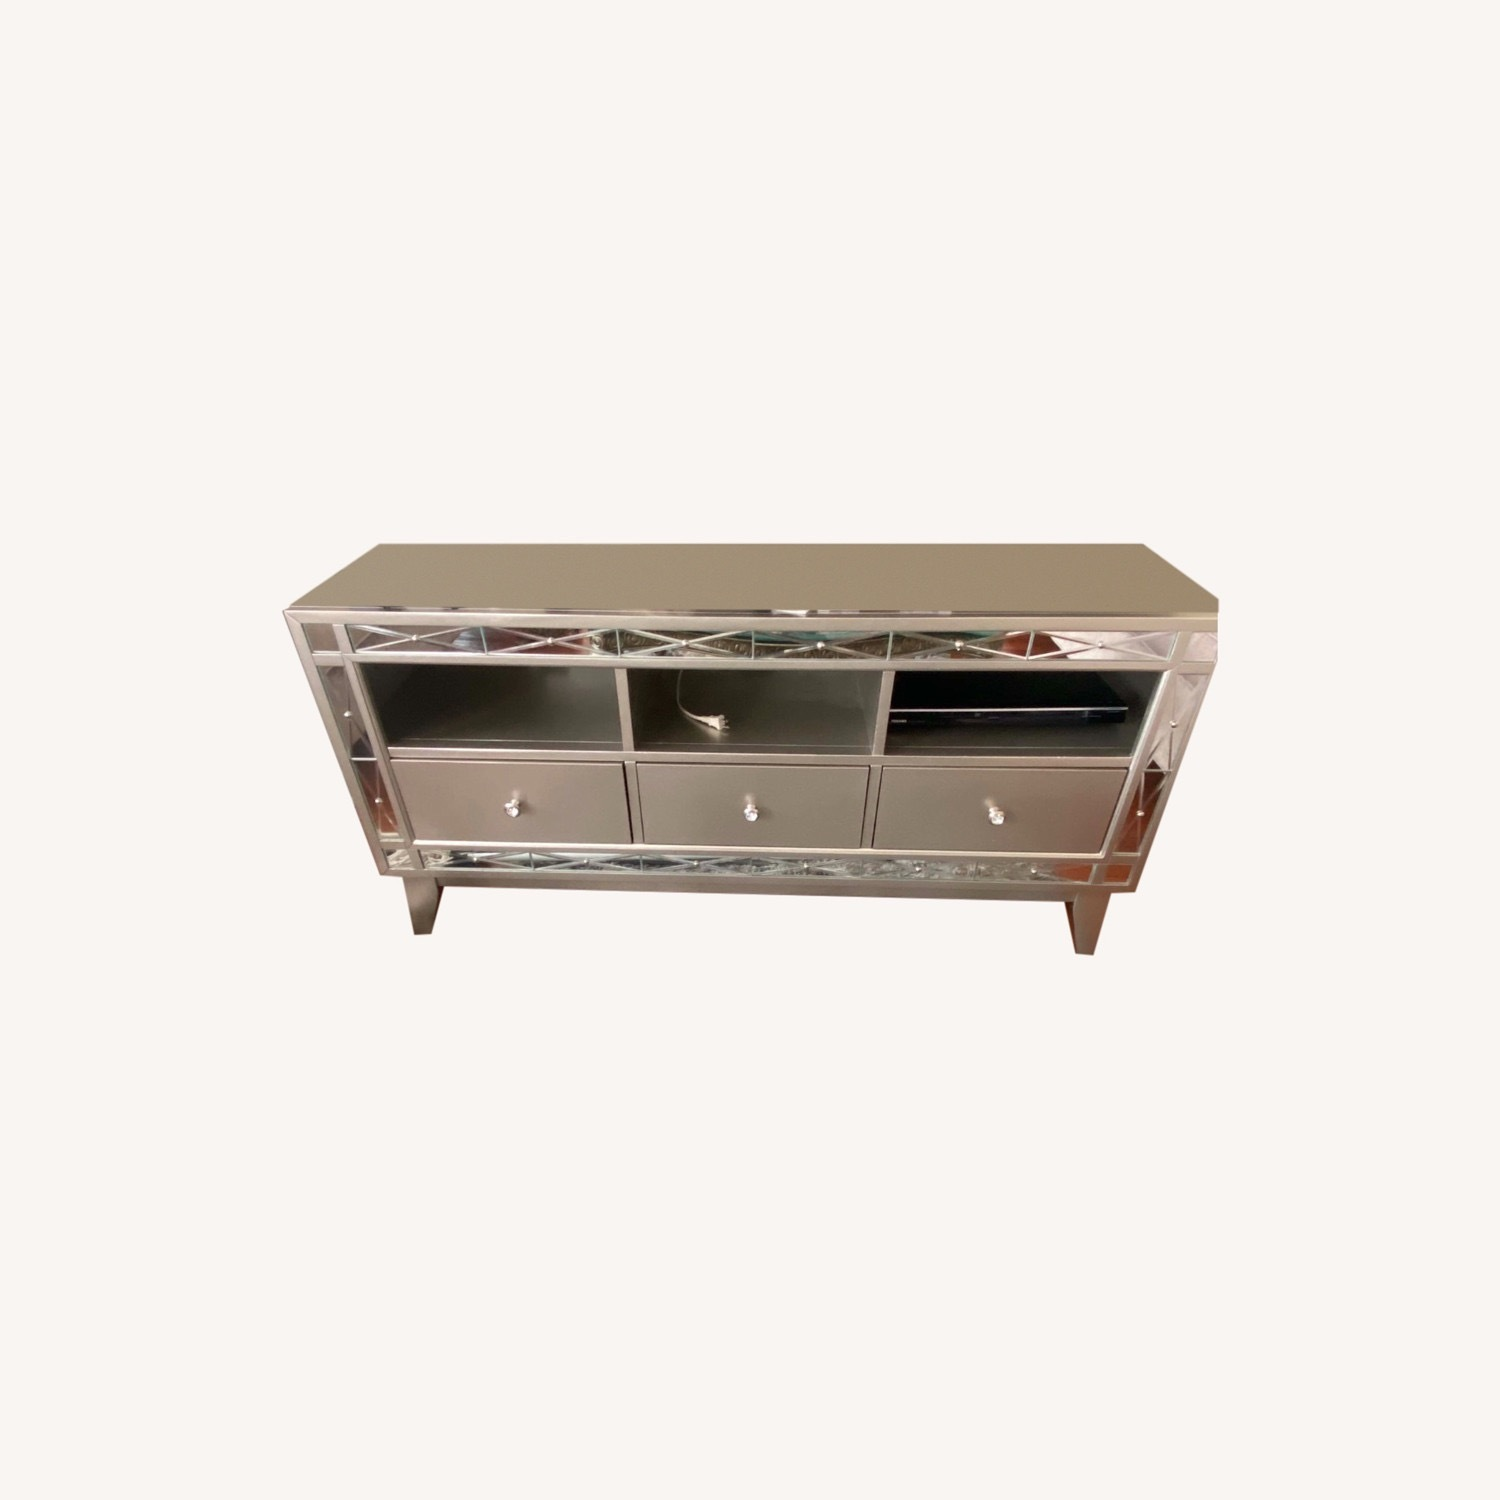 Bob's Discount Mirrored Media Storage/TV Stand - image-0